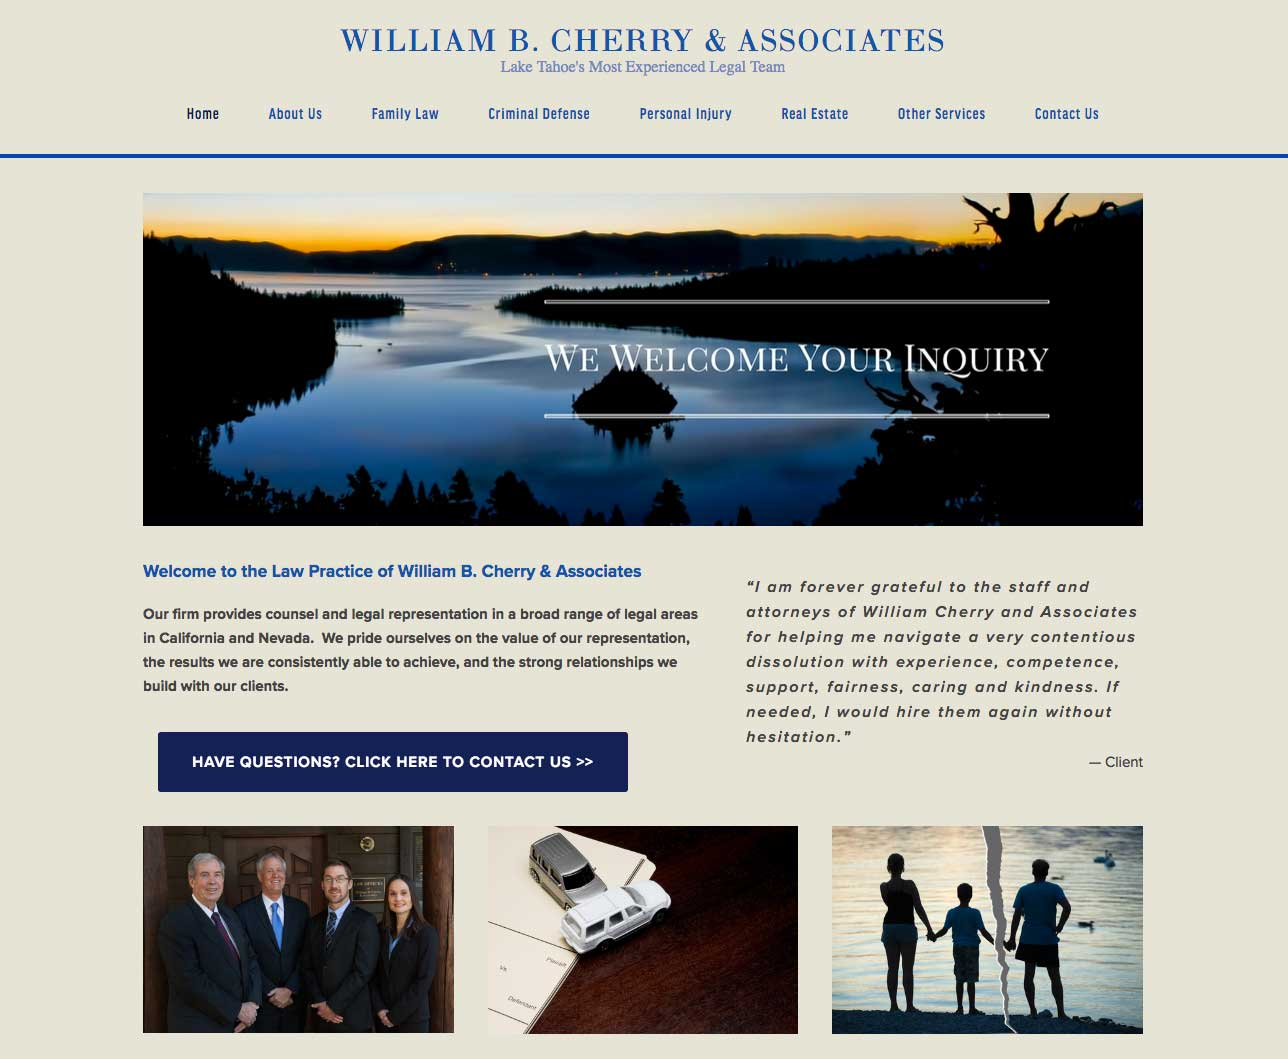 William B. Cherry & Associates